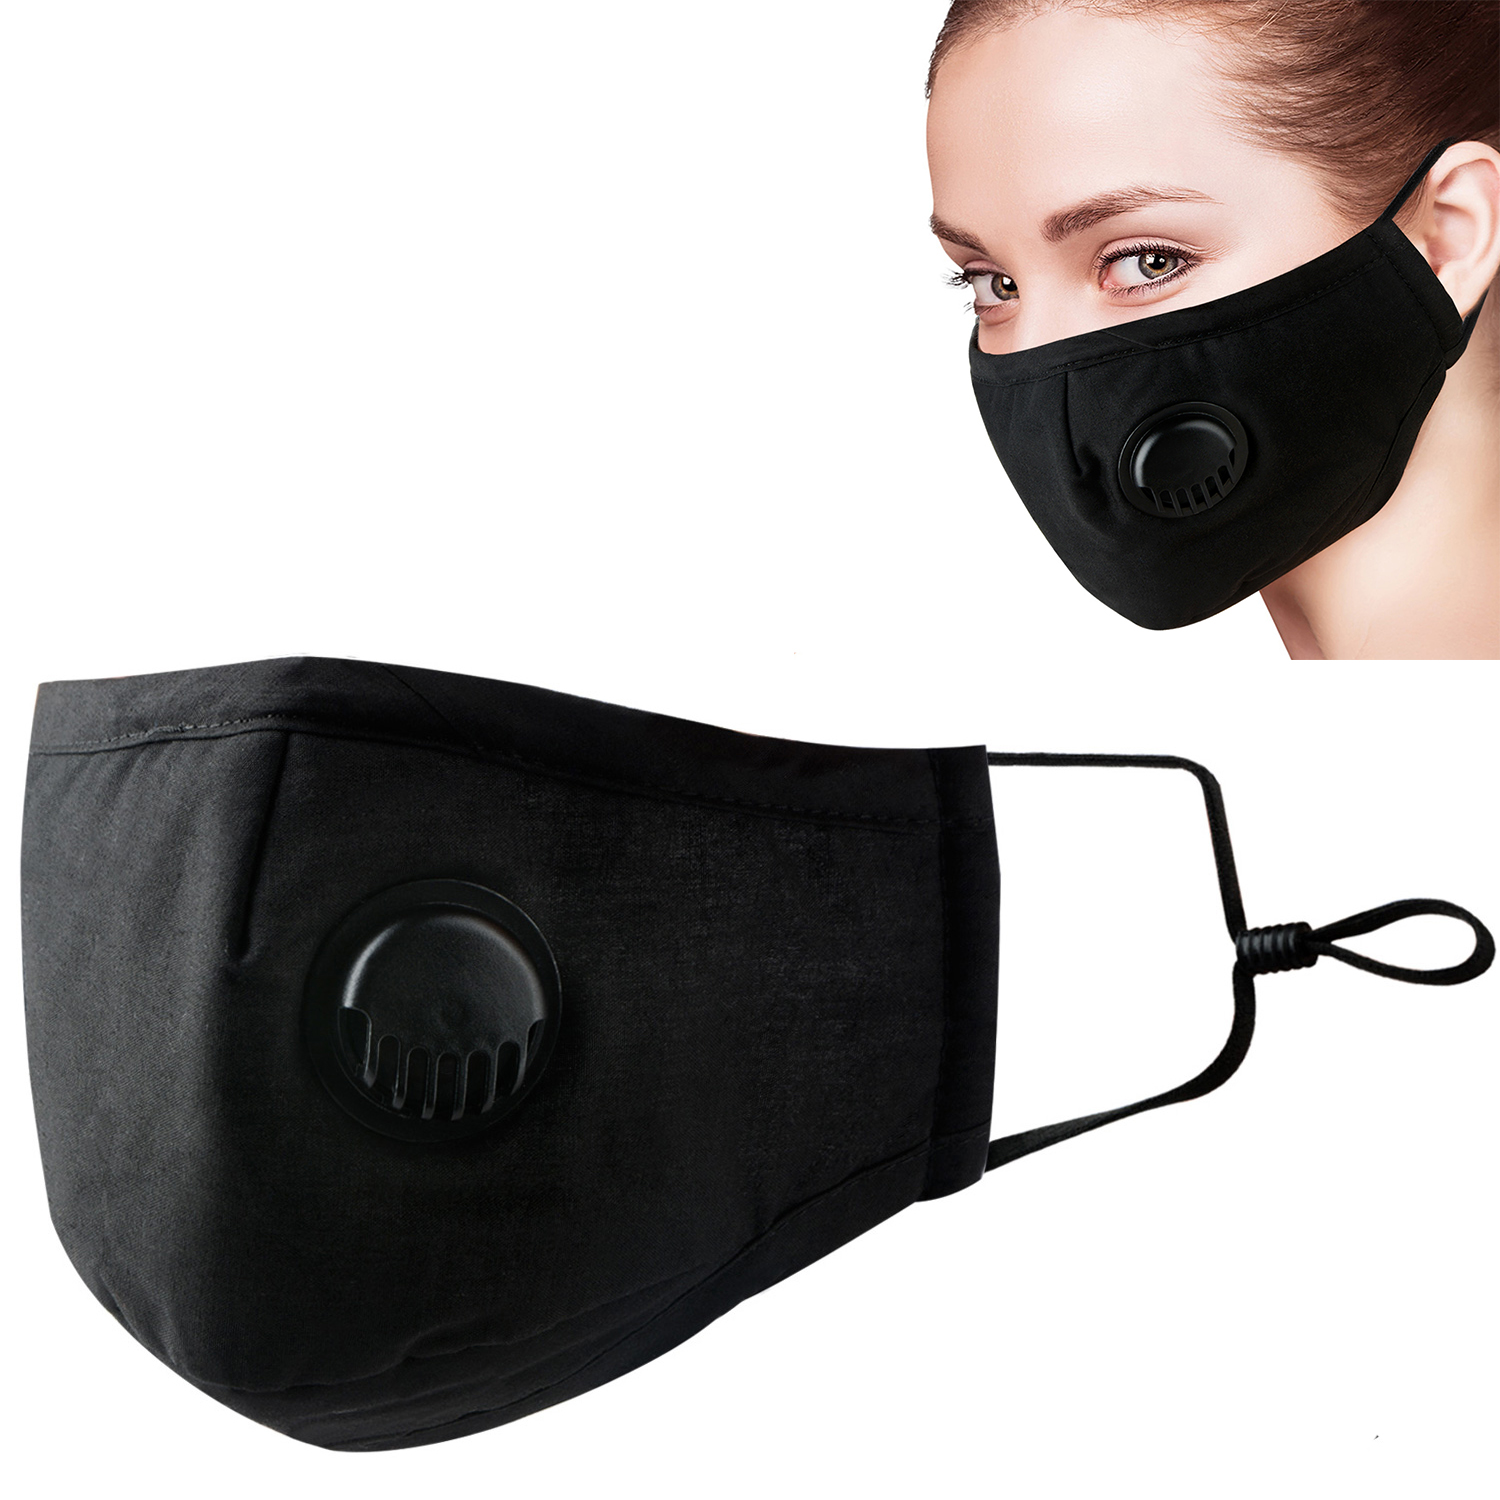 Dustproof Mouth Face Mask Anti Haze Mask Antibacterial Breathable Valved Dust Mask Respirator Washable Reusable For Adult Kids